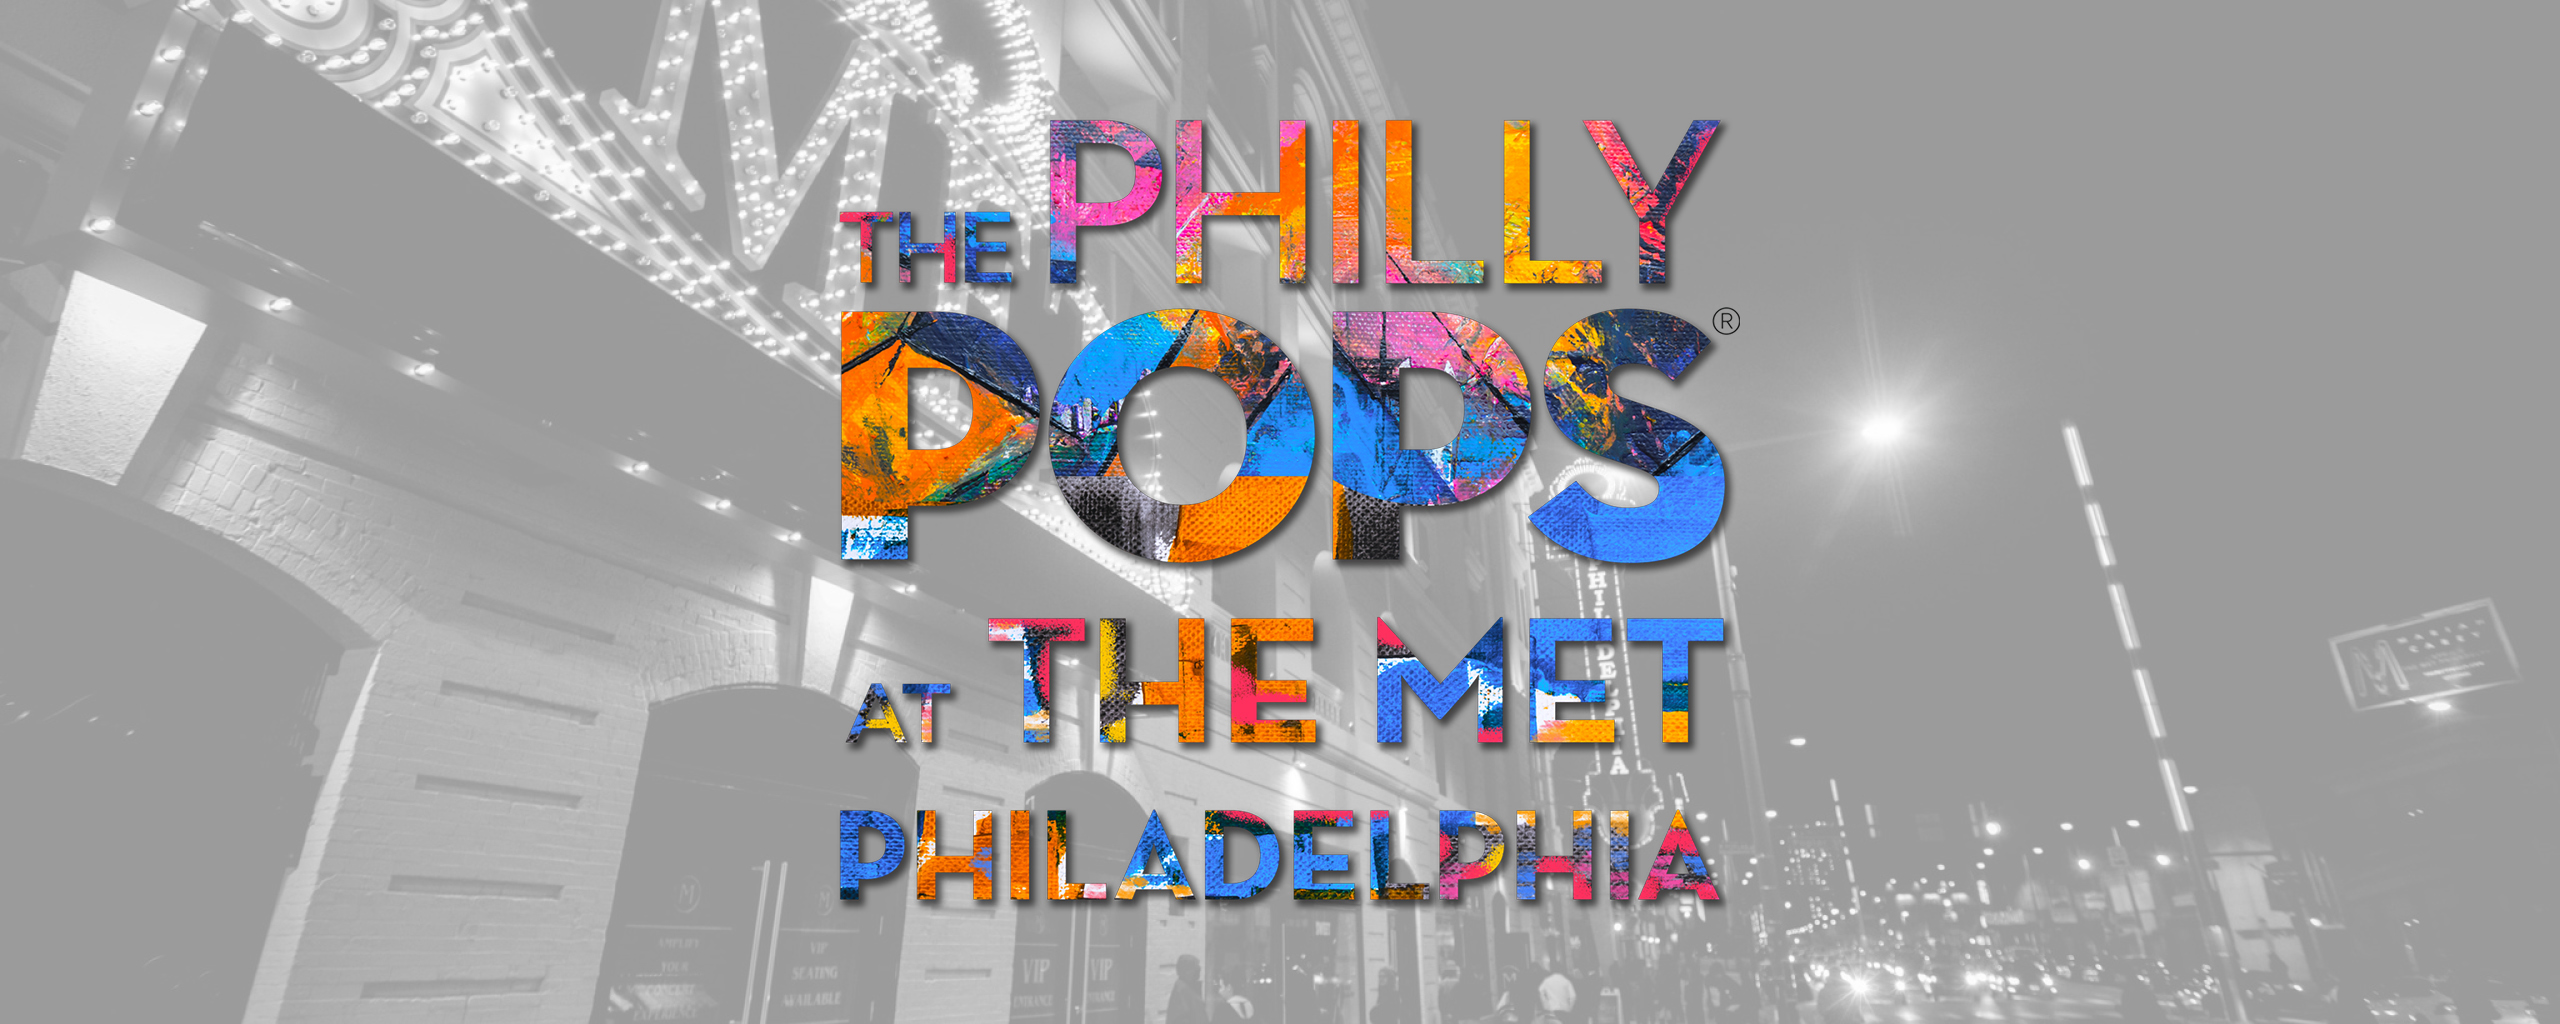 Christmas Shows In Philadelphia 2019.The Philly Pops At The Met Philadelphia The Philly Pops